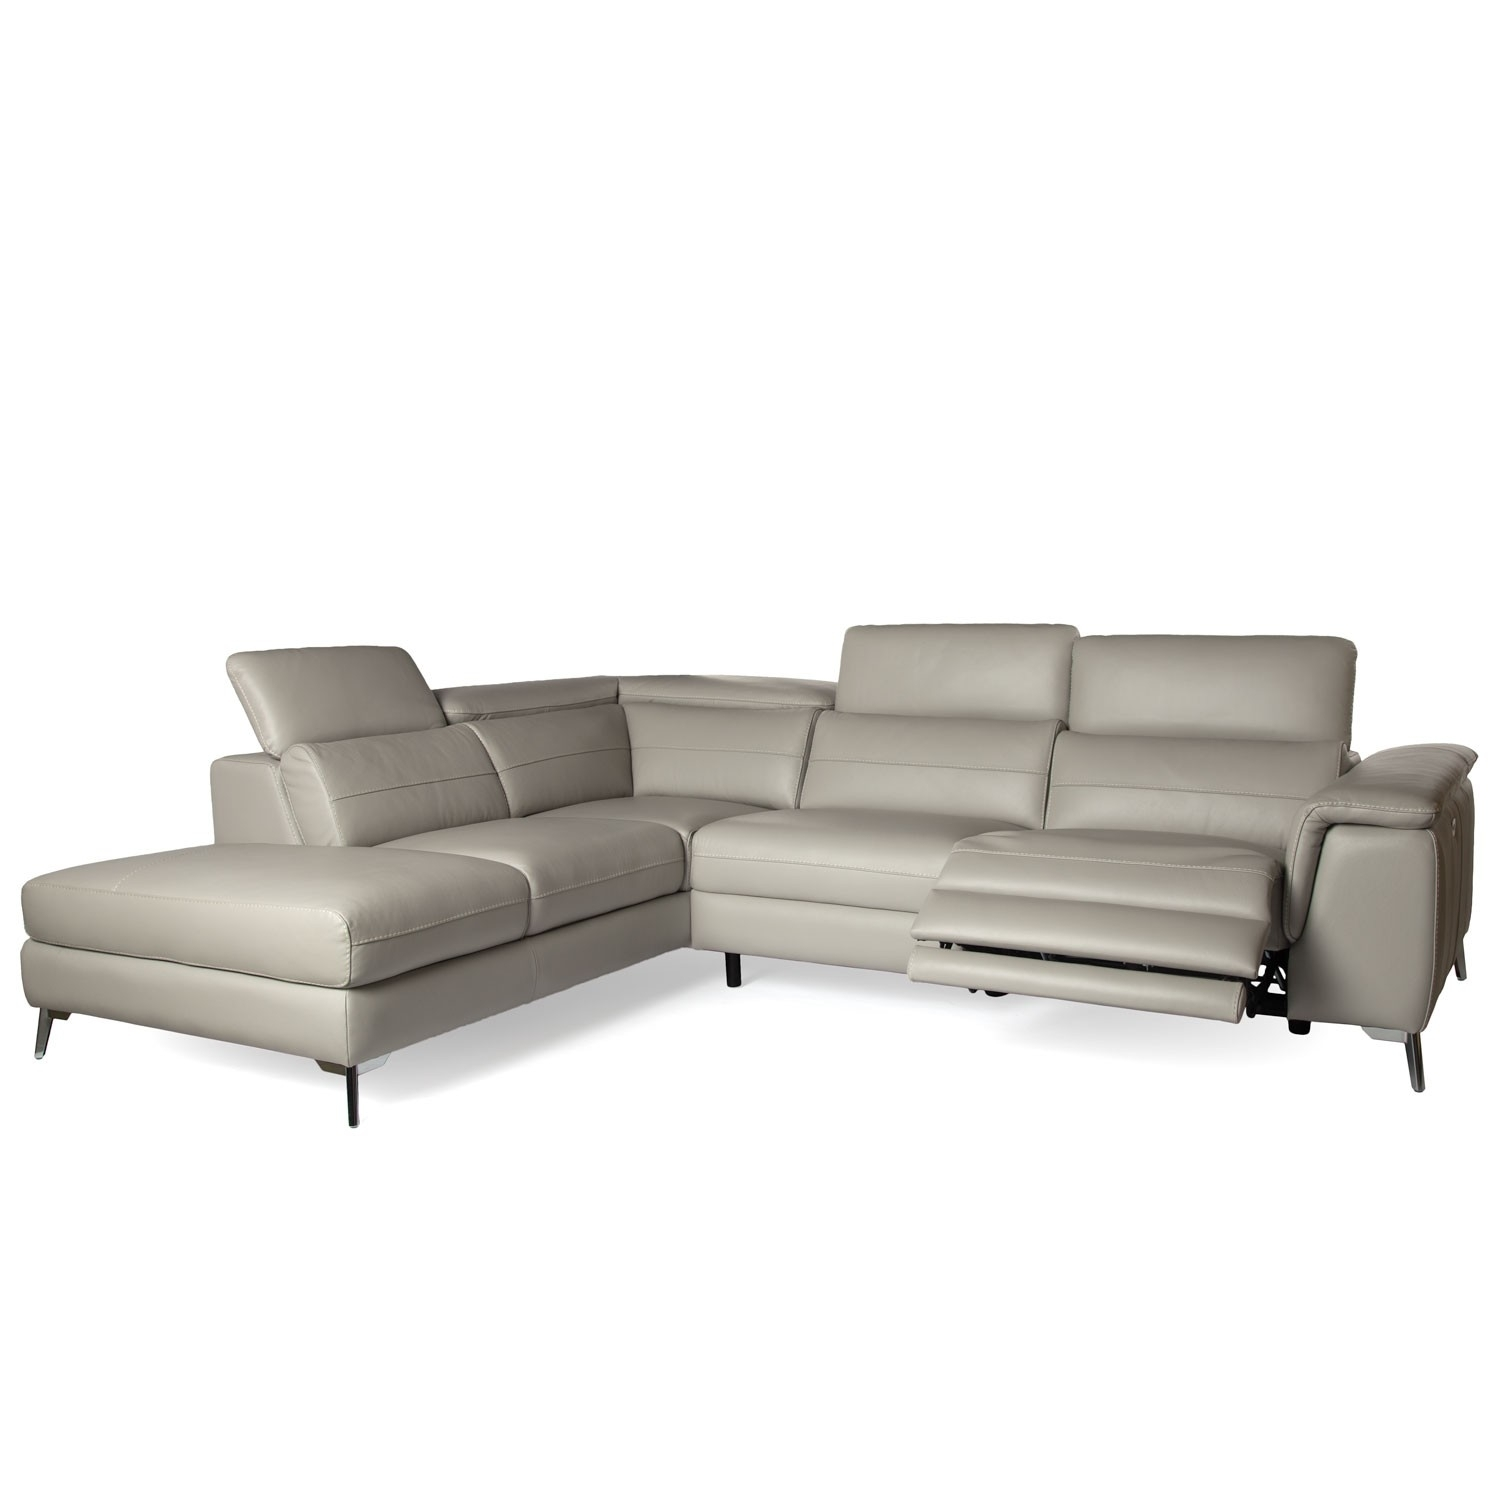 Grey Leather Reclining Sectional Clyde 3 Piece Power W Pwr Hdrst For Clyde Grey Leather 3 Piece Power Reclining Sectionals With Pwr Hdrst & Usb (View 7 of 30)